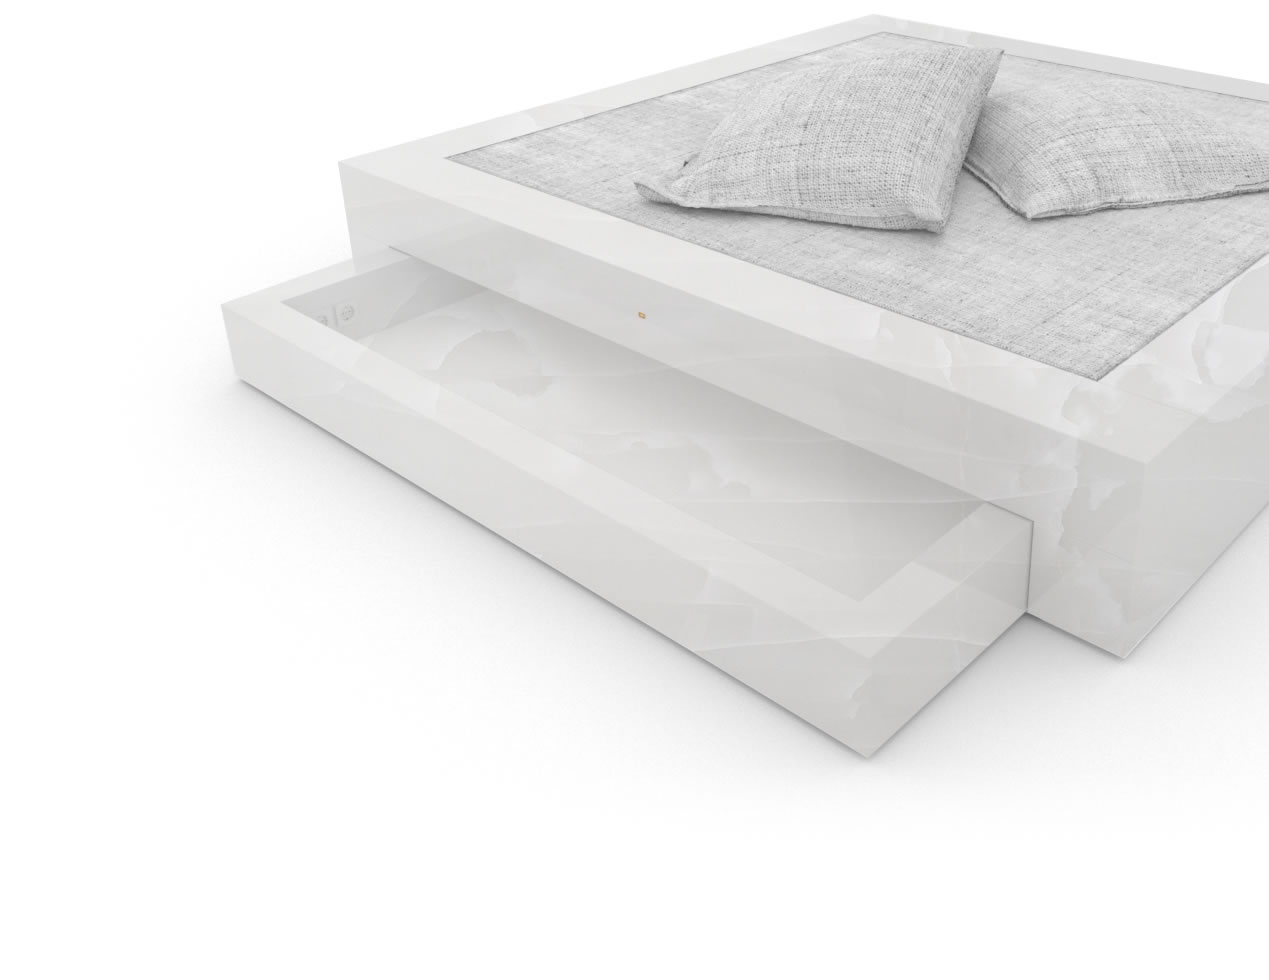 FELIX SCHWAKE BED I I 2 bed drawers onyx marble white modern bed with bed drawers